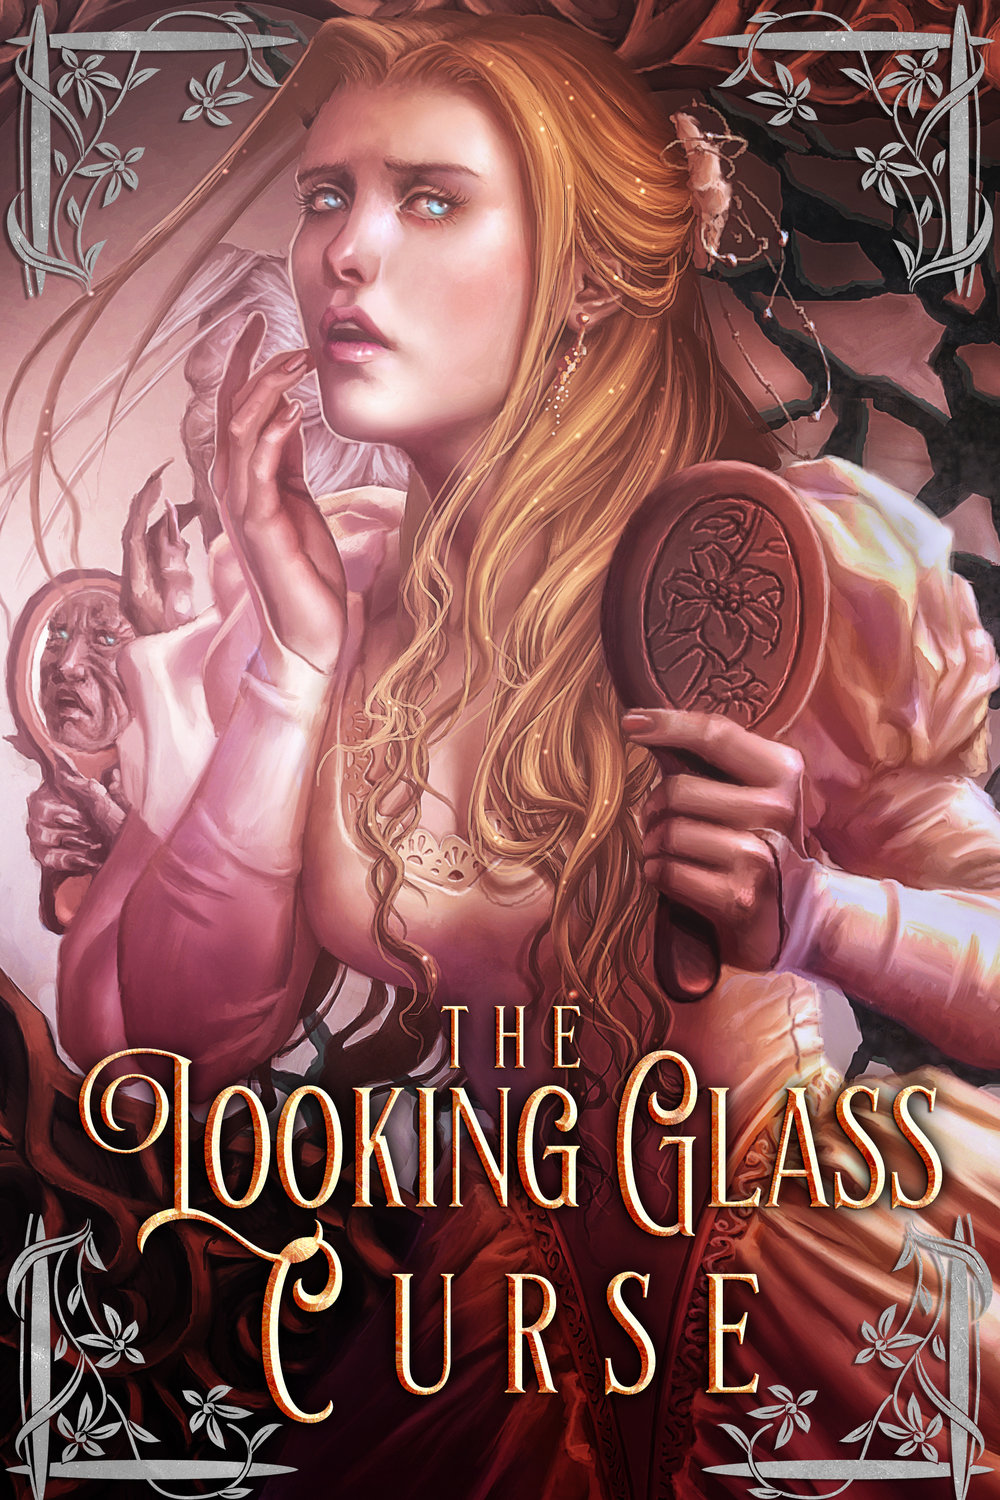 $125 - The Looking Glass Curse